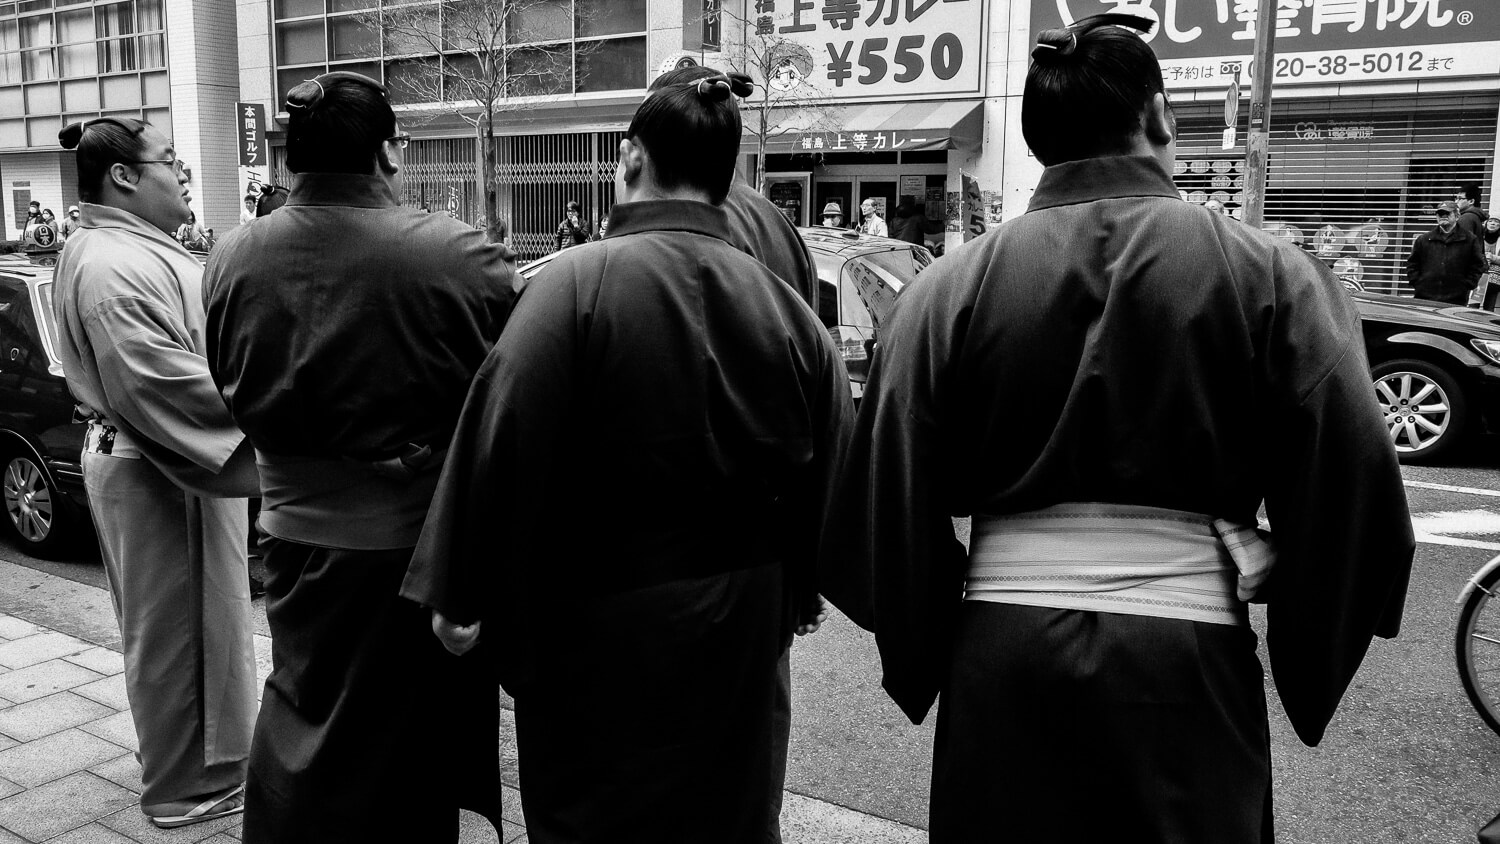 "Sumo wrestlers waiting outside the venue for the grand tournament in Japan. Travel photography and guide by © Natasha Lequepeys for ""And Then I Met Yoko"". #japan #japanitinerary #tokyo #osaka #travelblog #travelphotography #landscapephotography #travelitinerary #fujifilm #kyoto #nara #oaska #travelguide #asia #foodphotography #japantravel #japanfood #ryokan #cherryblossom #springtravel"